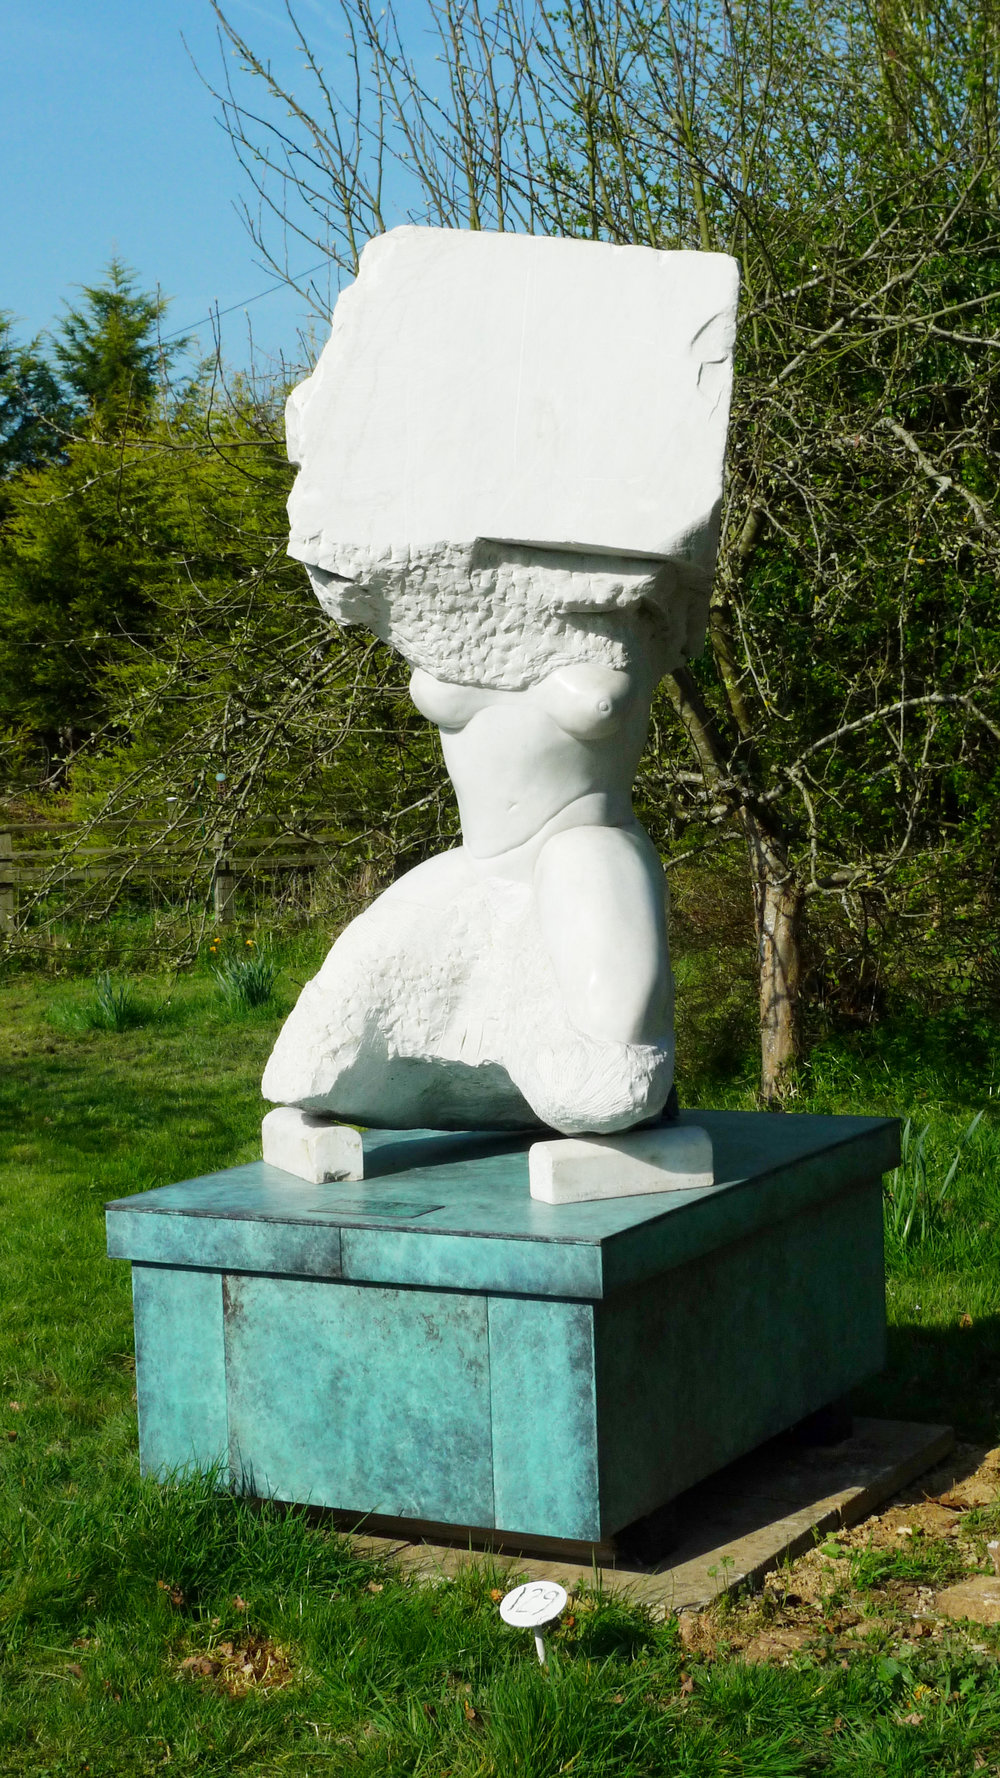 My Lady at the Cotswold Sculpture Park until September 30th 2019